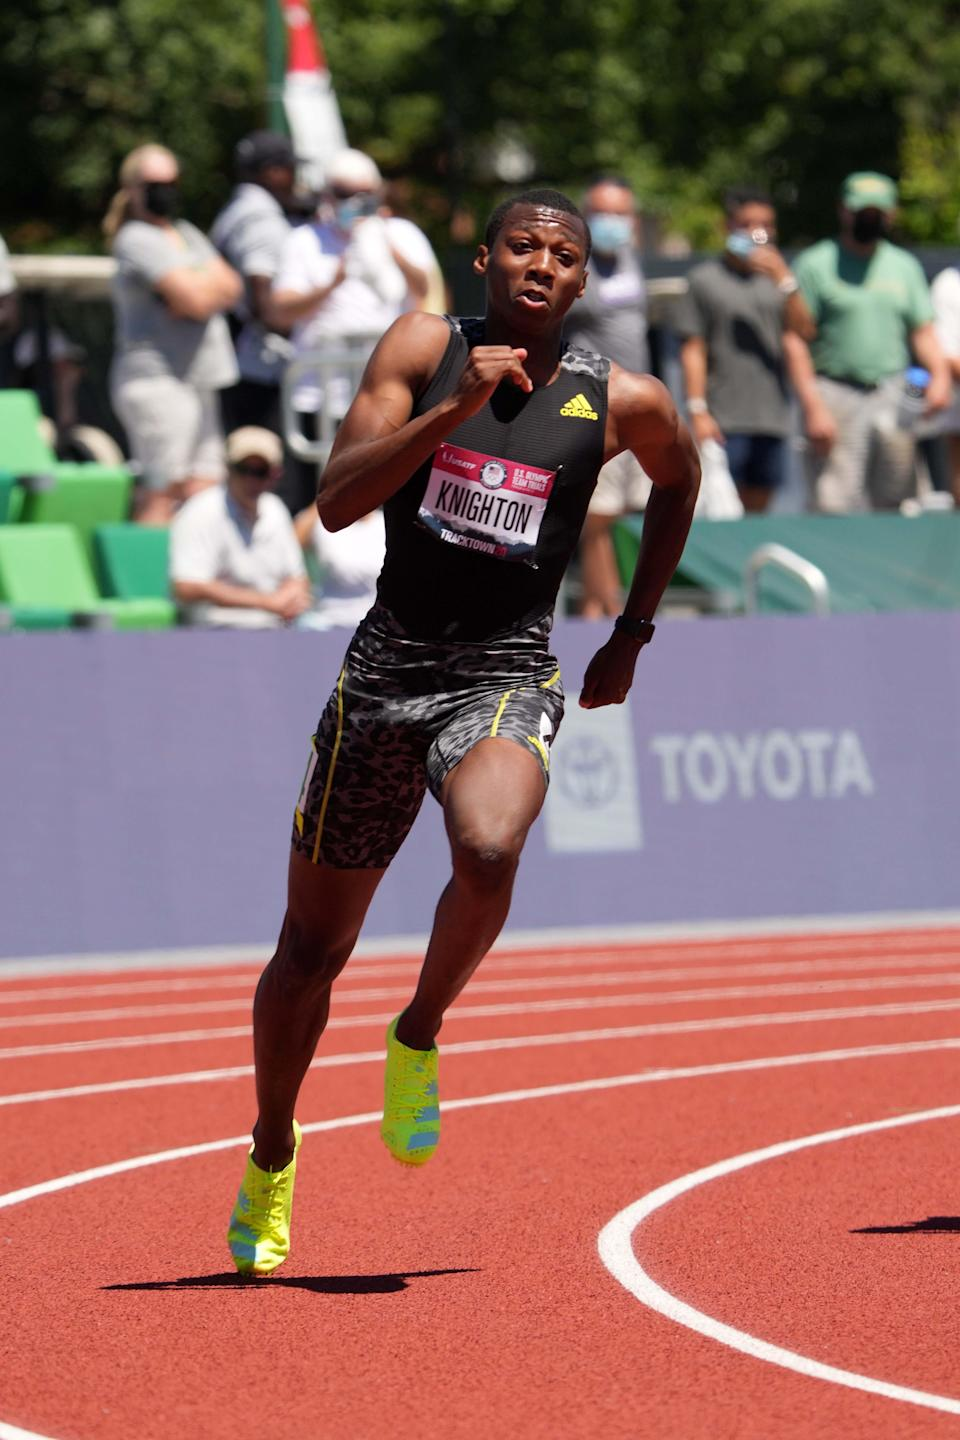 Erriyon Knighton announced himself as one of the rising stars in U.S. track and field Sunday.